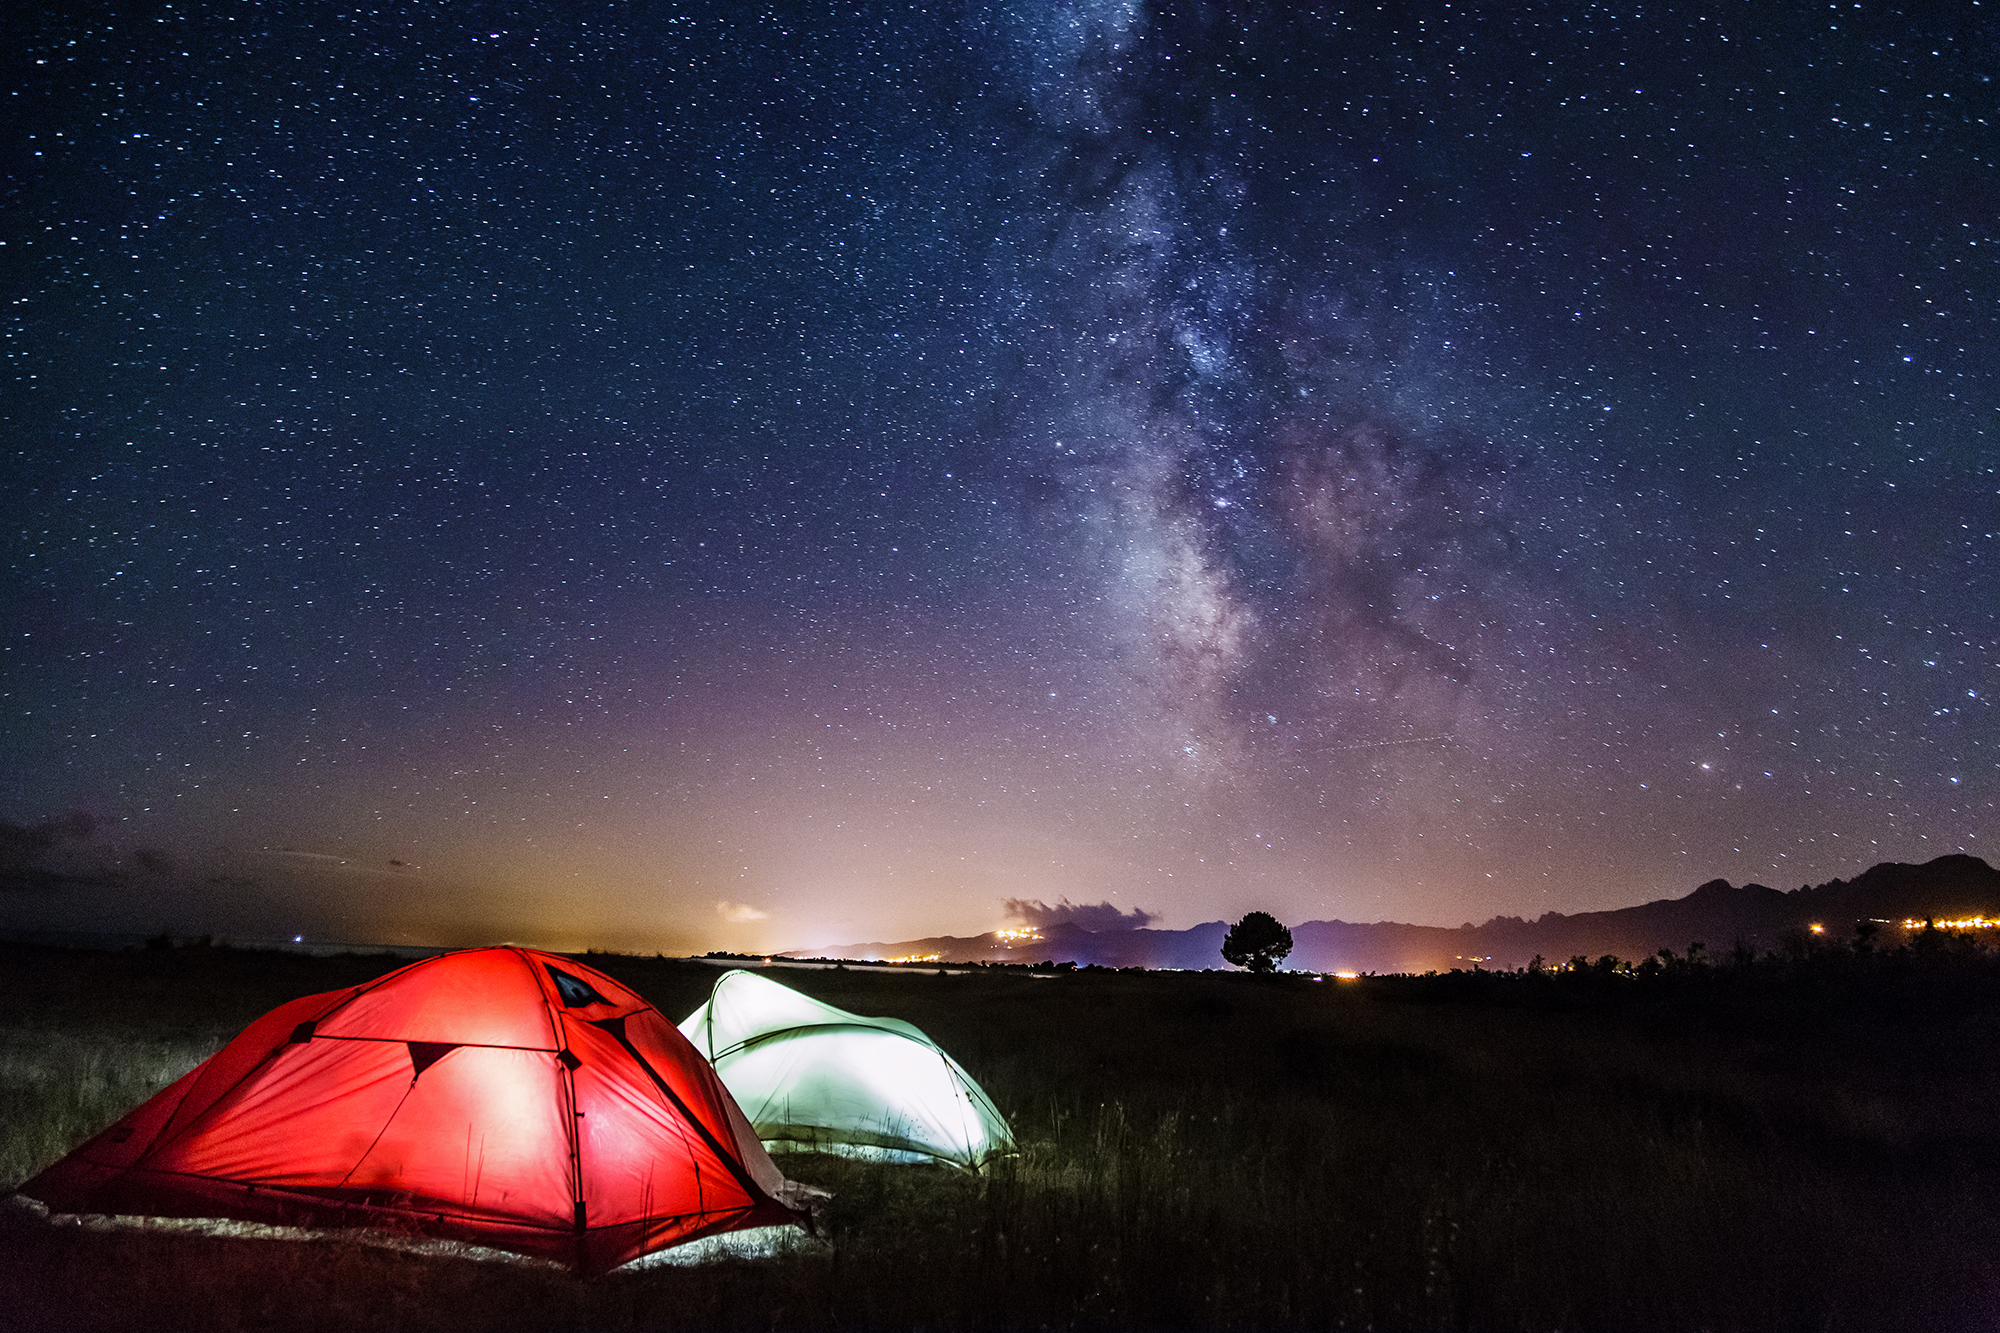 Camping under the Milky Way...